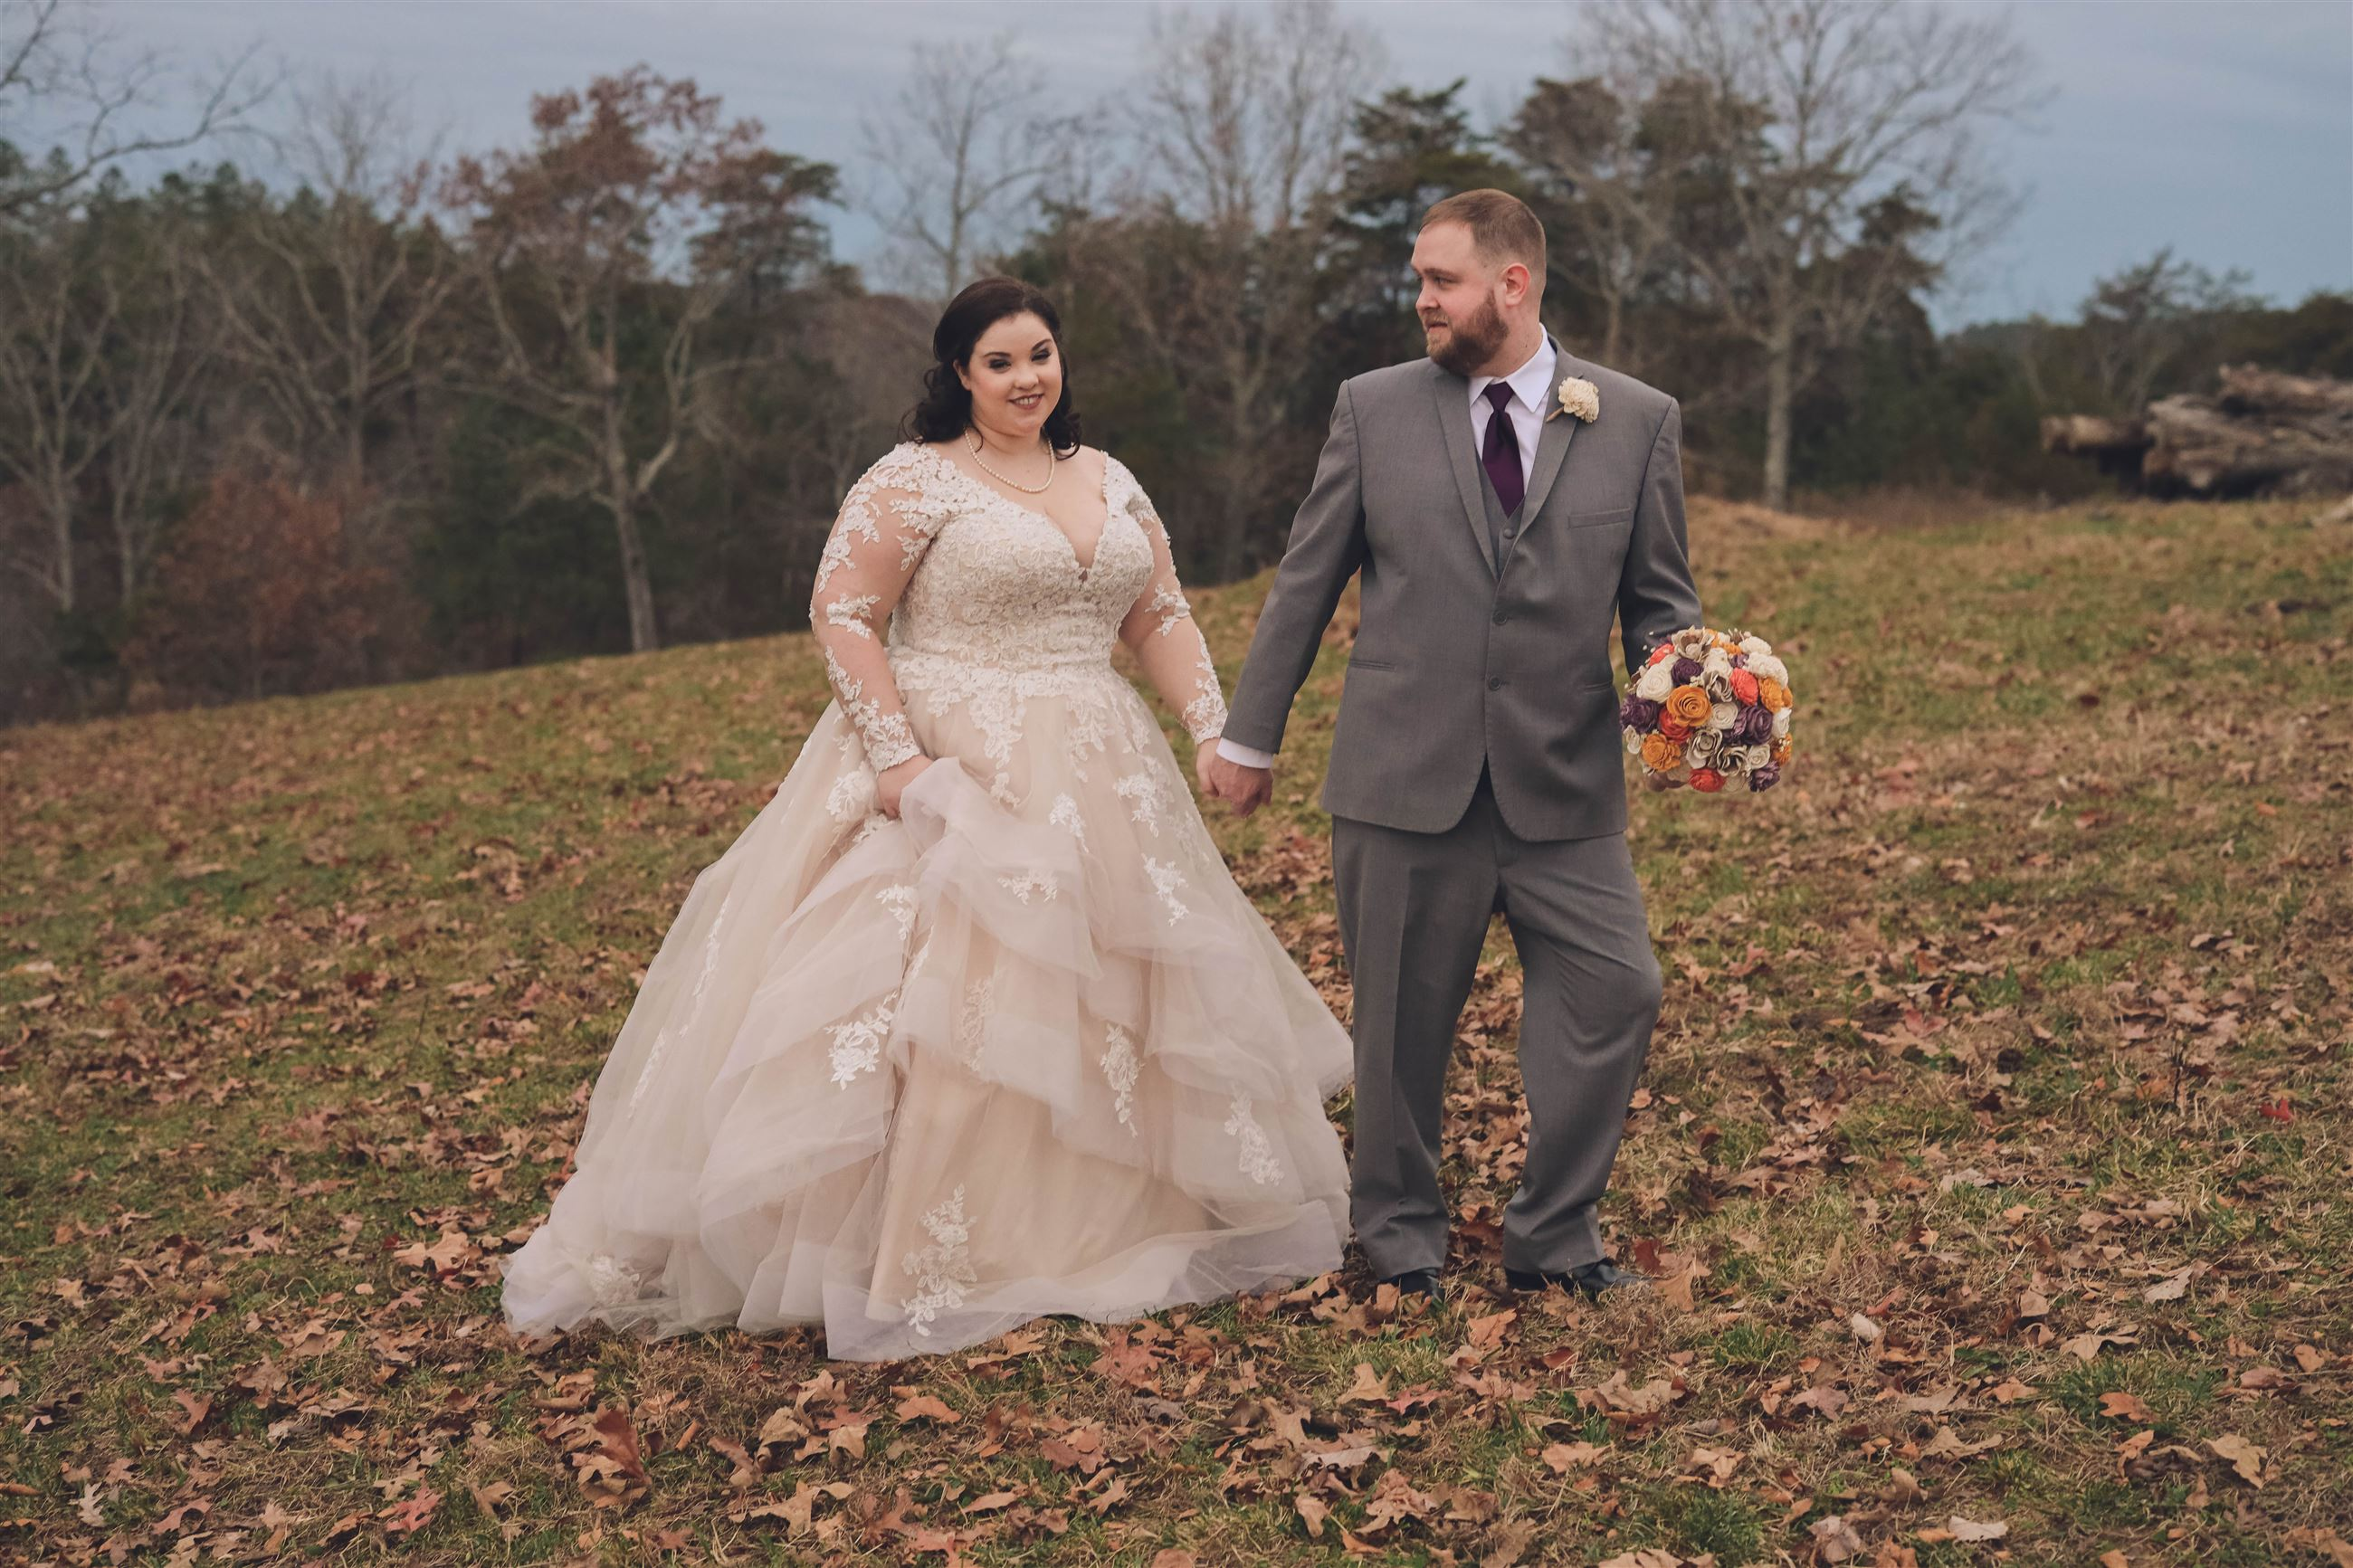 Lewallen Farms, Essense of Australia, Wedding Dress, Plus Sized Bride,